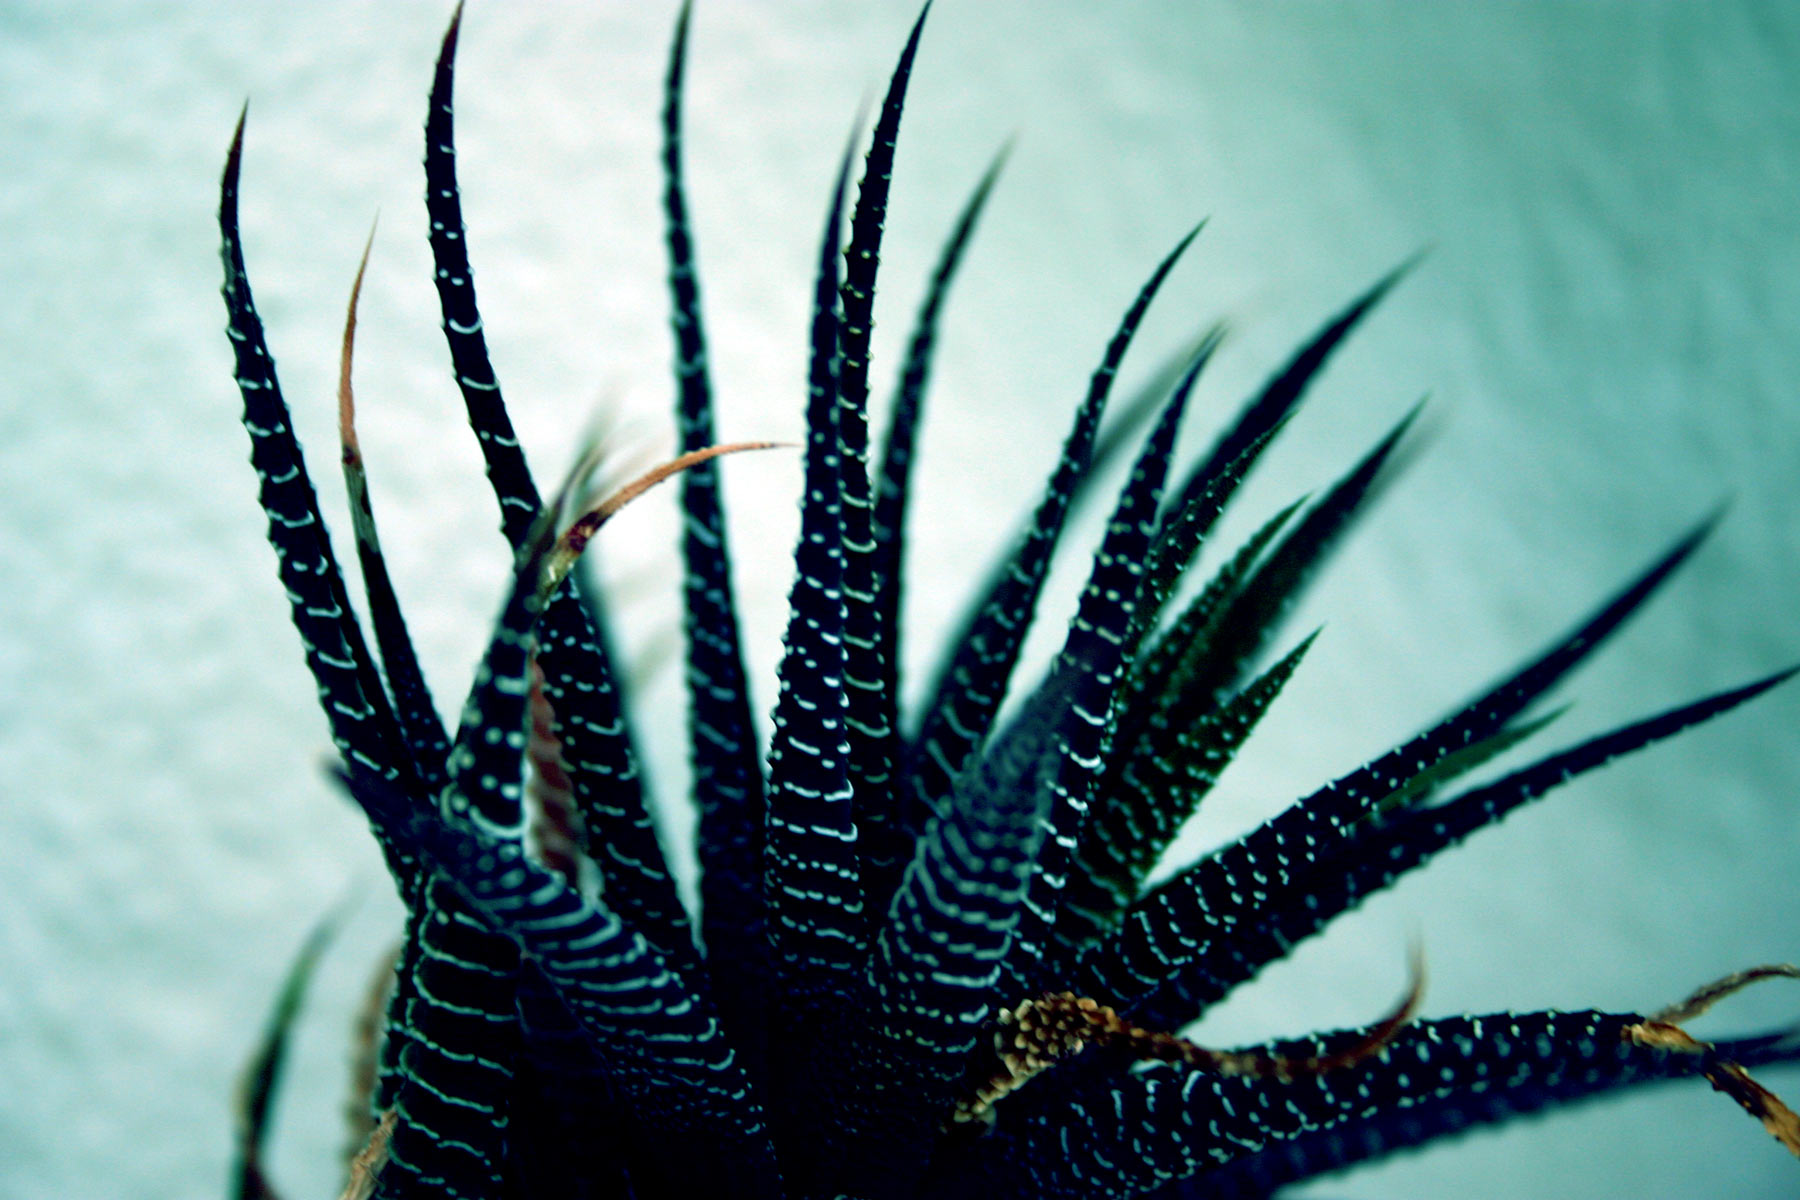 Tentacles, Spikes, Plant, HQ Photo